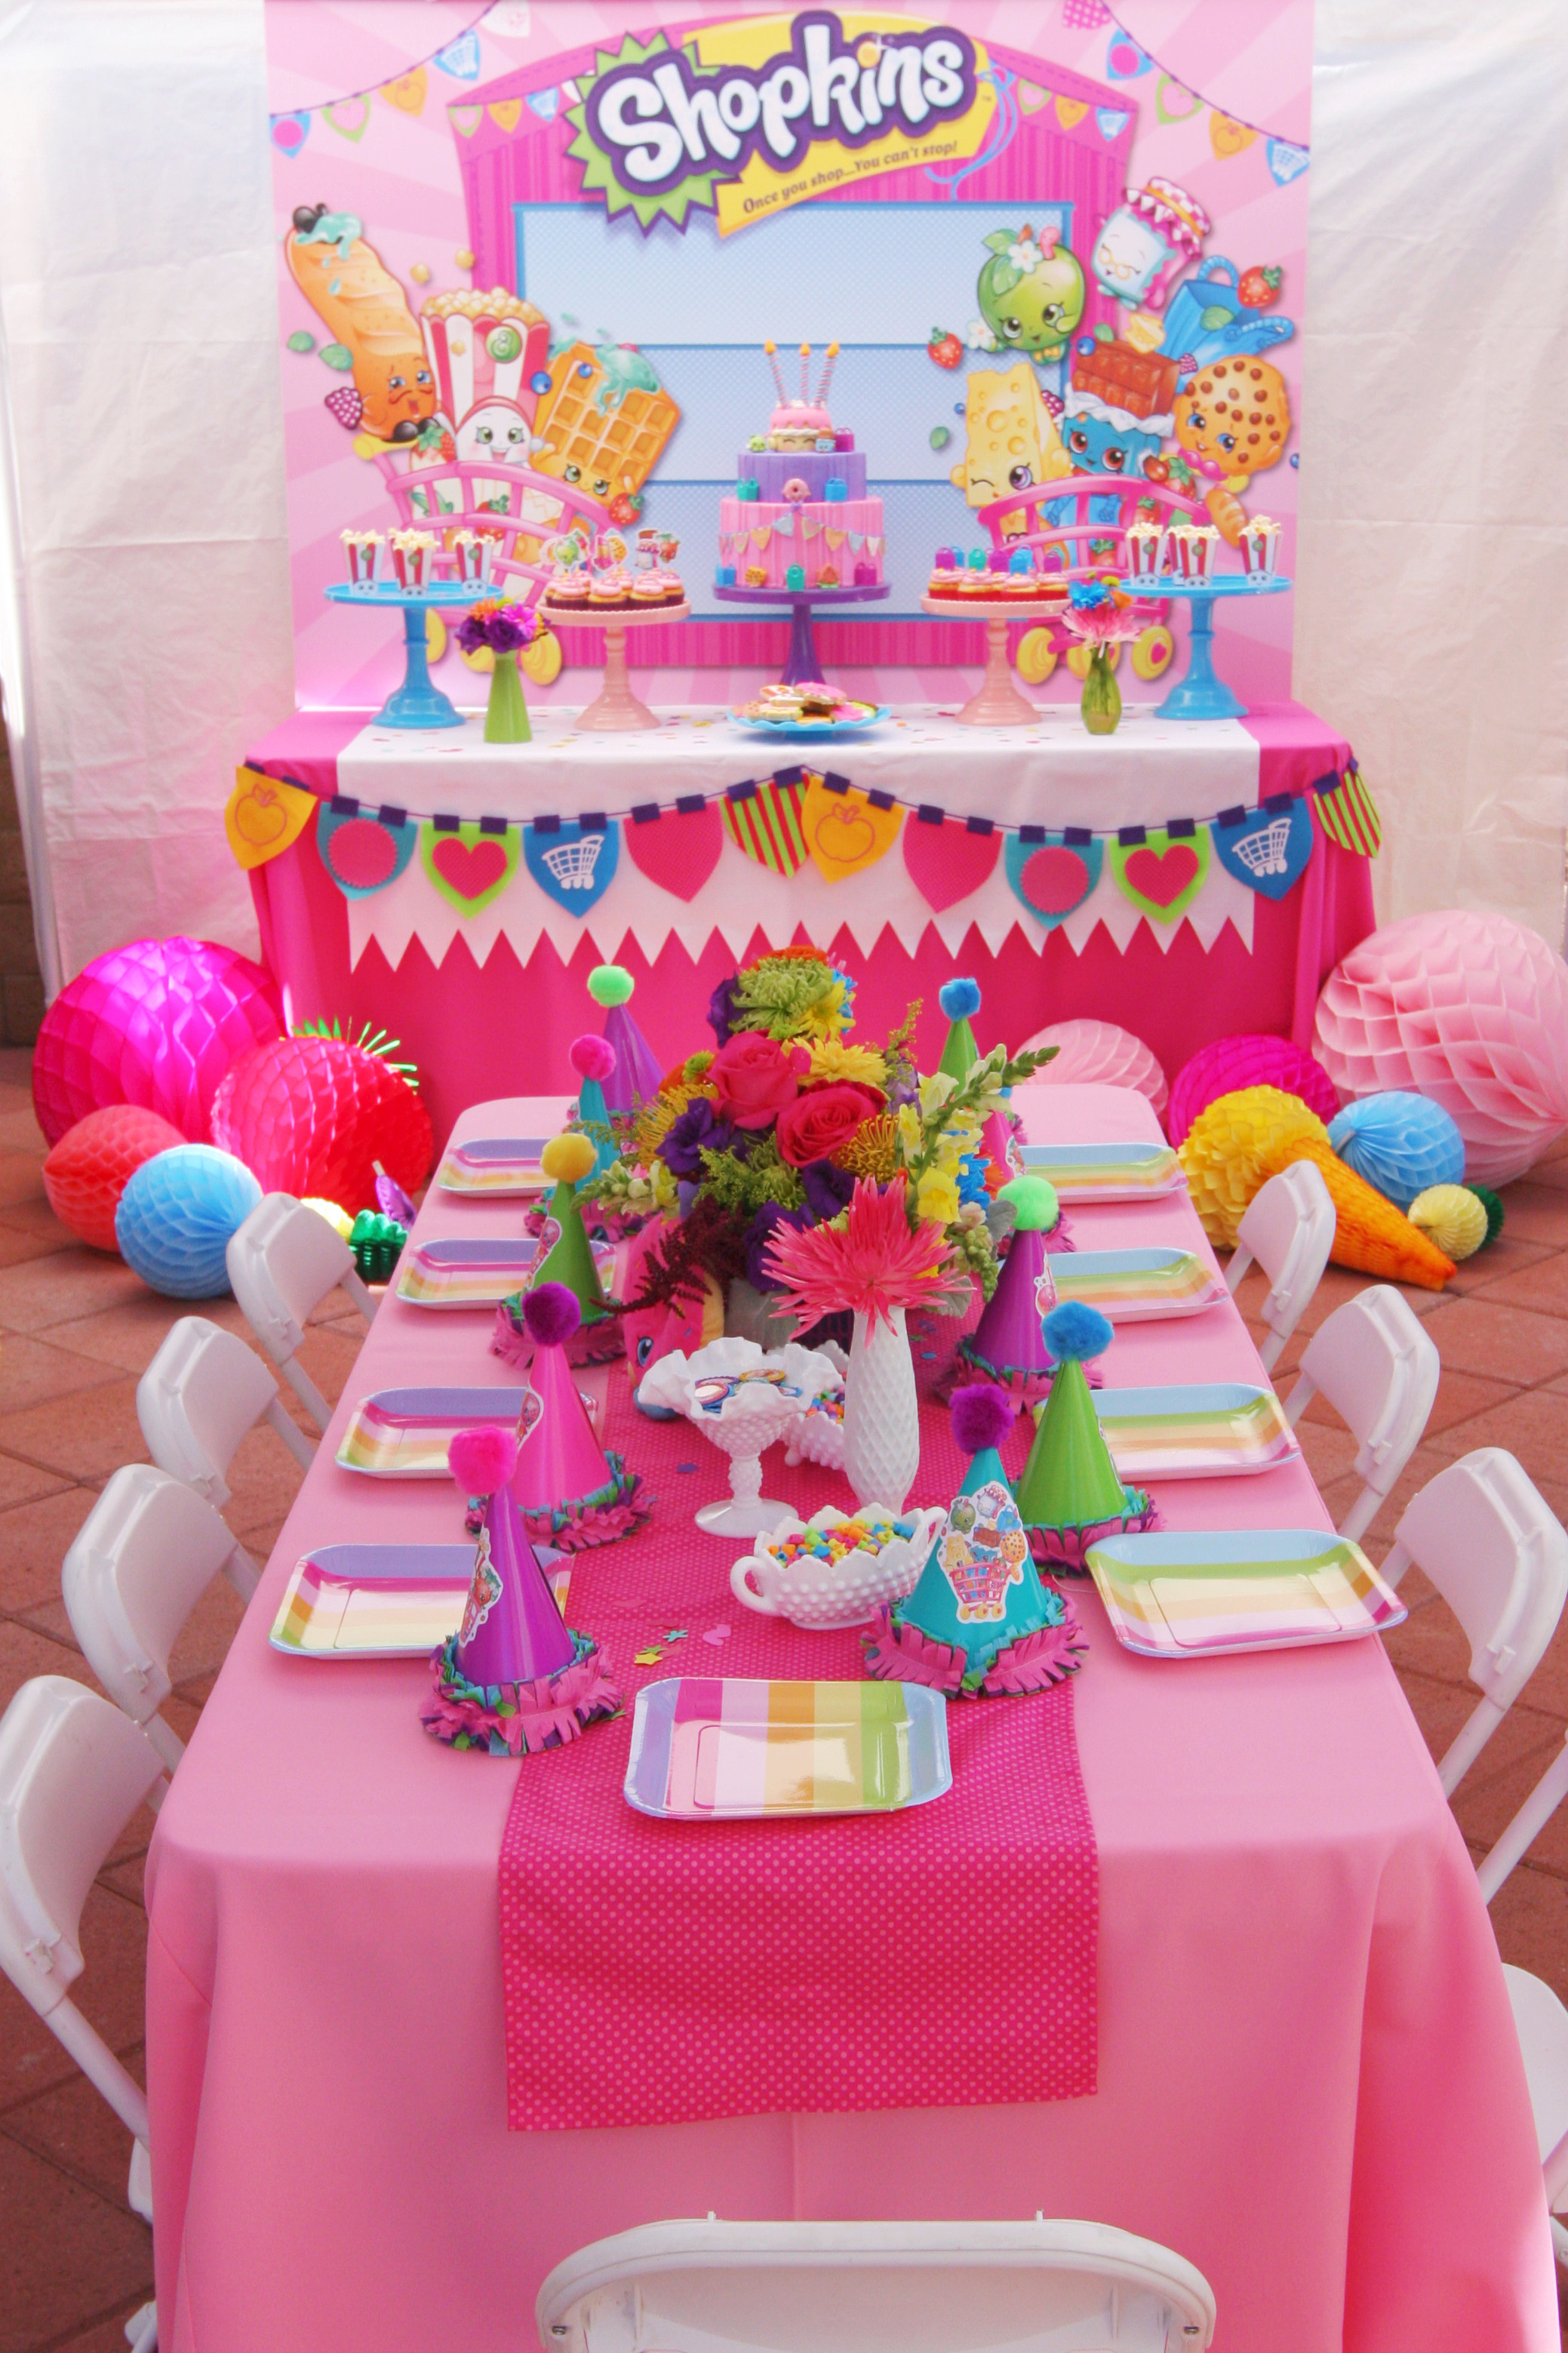 Best ideas about Girls Birthday Party Decorations . Save or Pin Shopkins Birthday Party by Minted and Vintage Now.